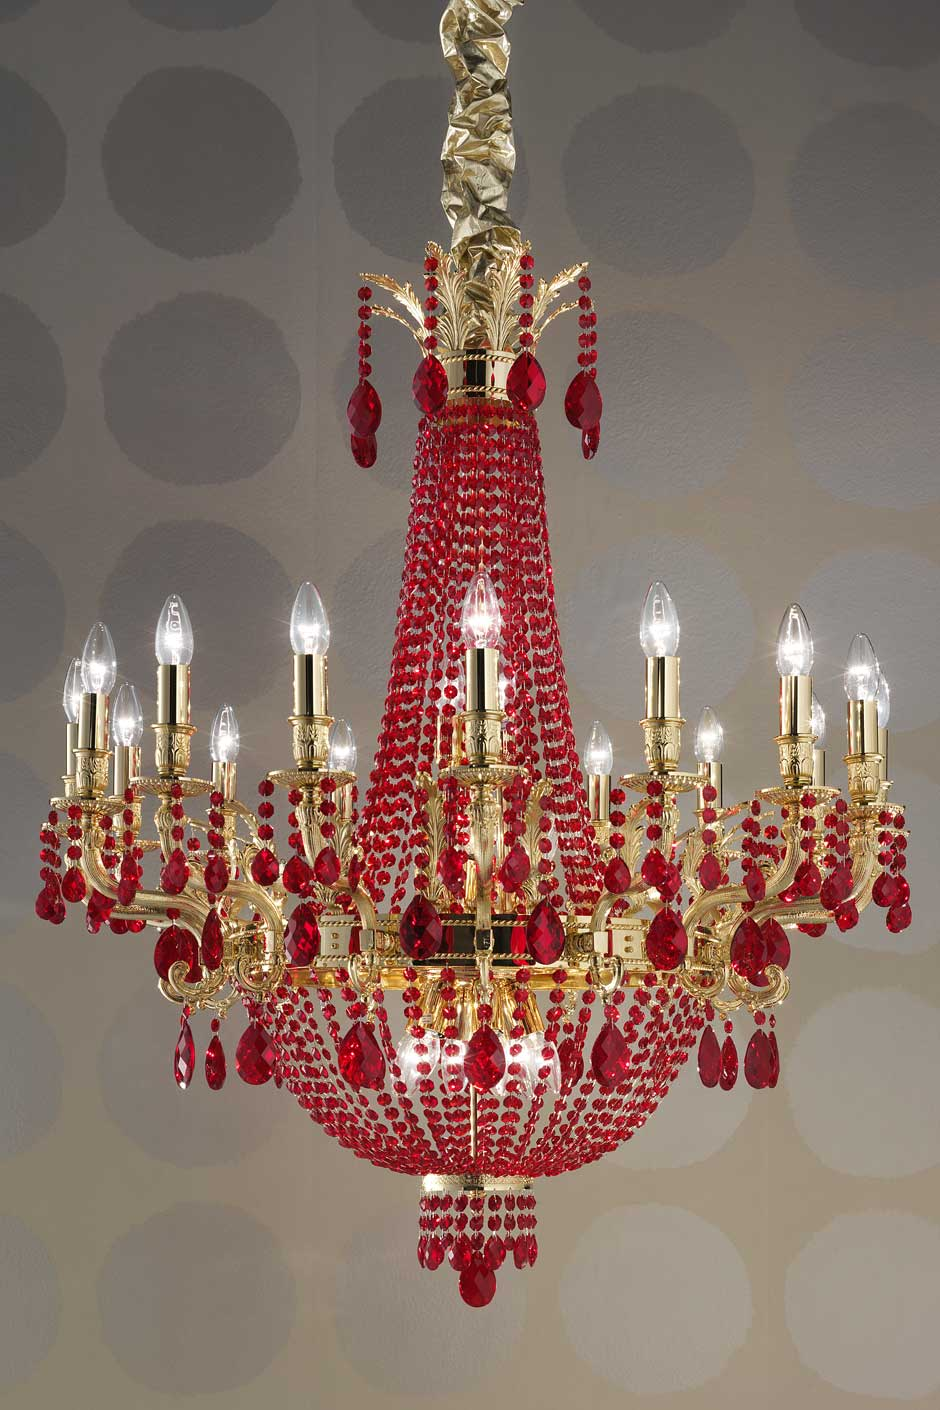 Red Chandelier Wall Lights : Red 24-light crystal chandelier Masiero Murano and crystal chandeliers, lamps and wall ...